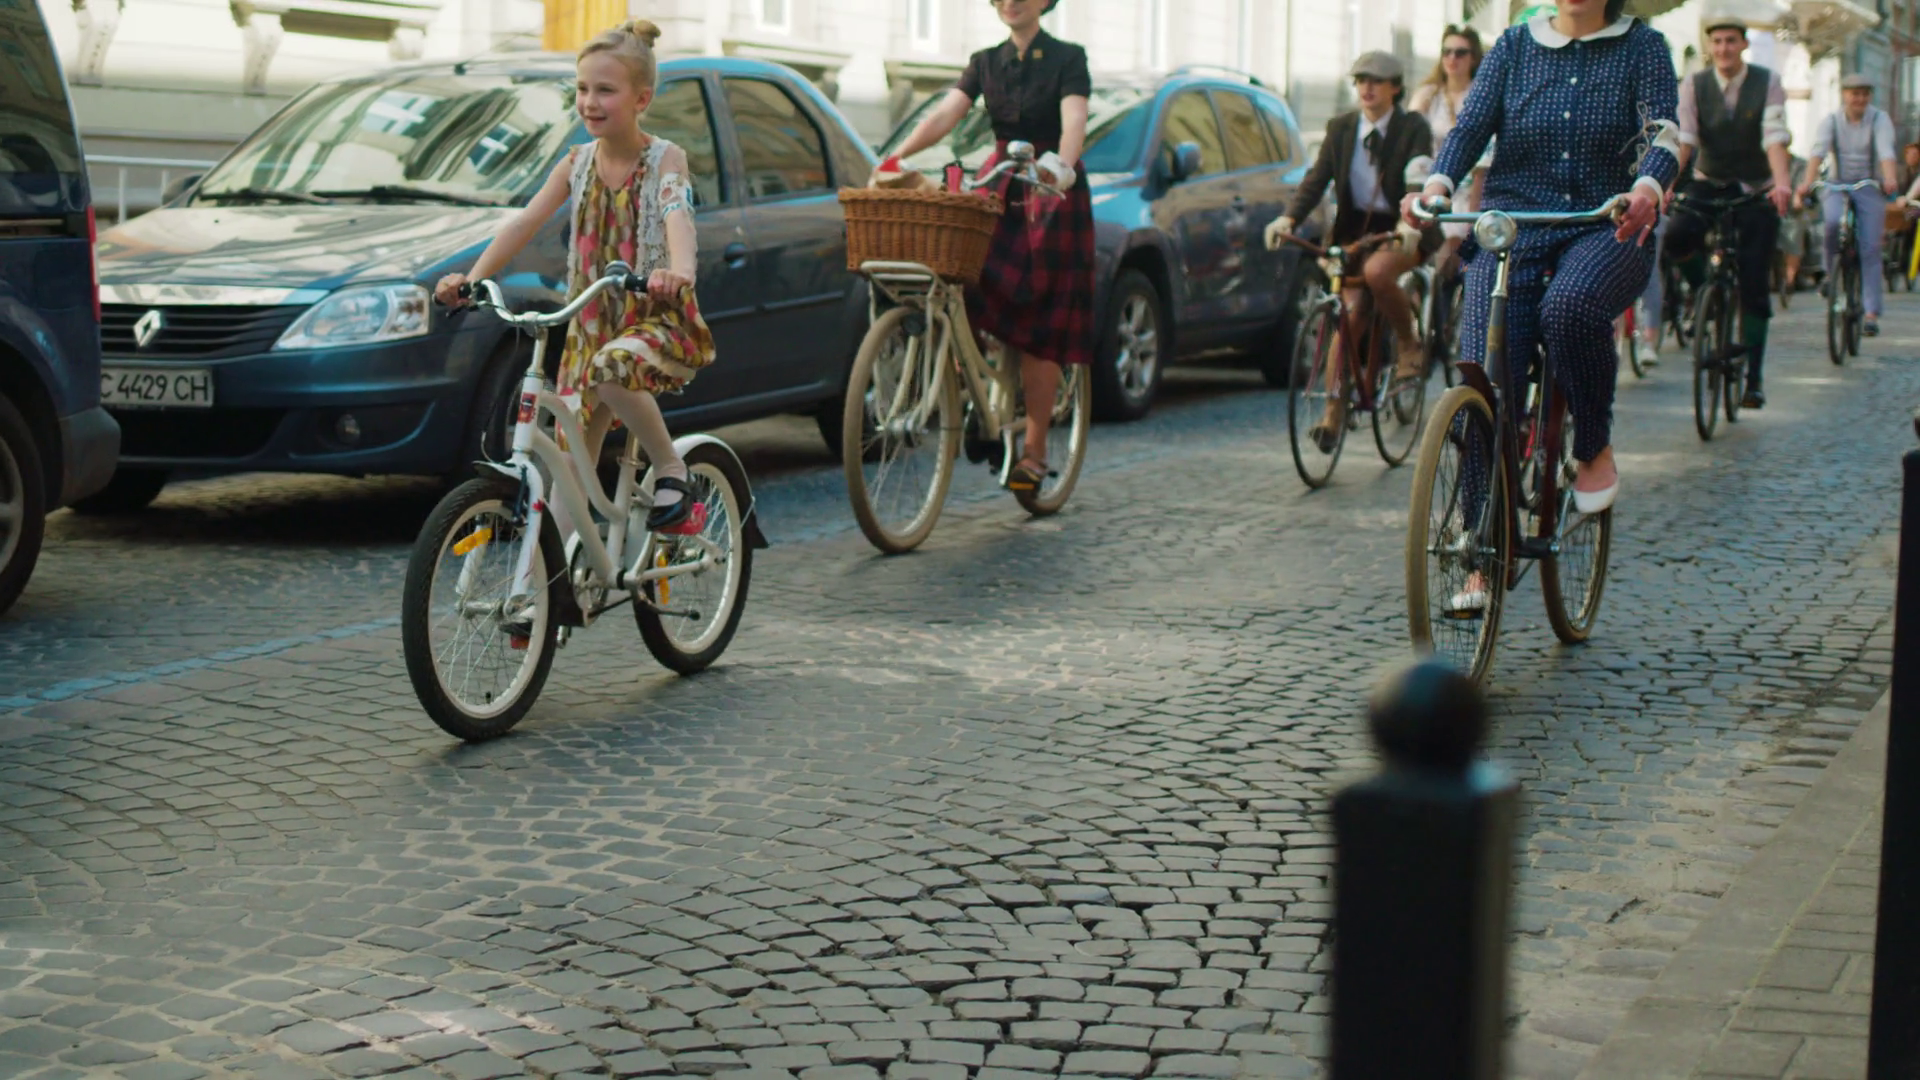 videoblocks-vienna-austria-april-2017-group-of-byciclists-doing-retro-bike-marathon-on-the-city-streets-people-riding-their-bicycles-on-the-city-road_hhdjyfqzb_thumbnail-full01.png